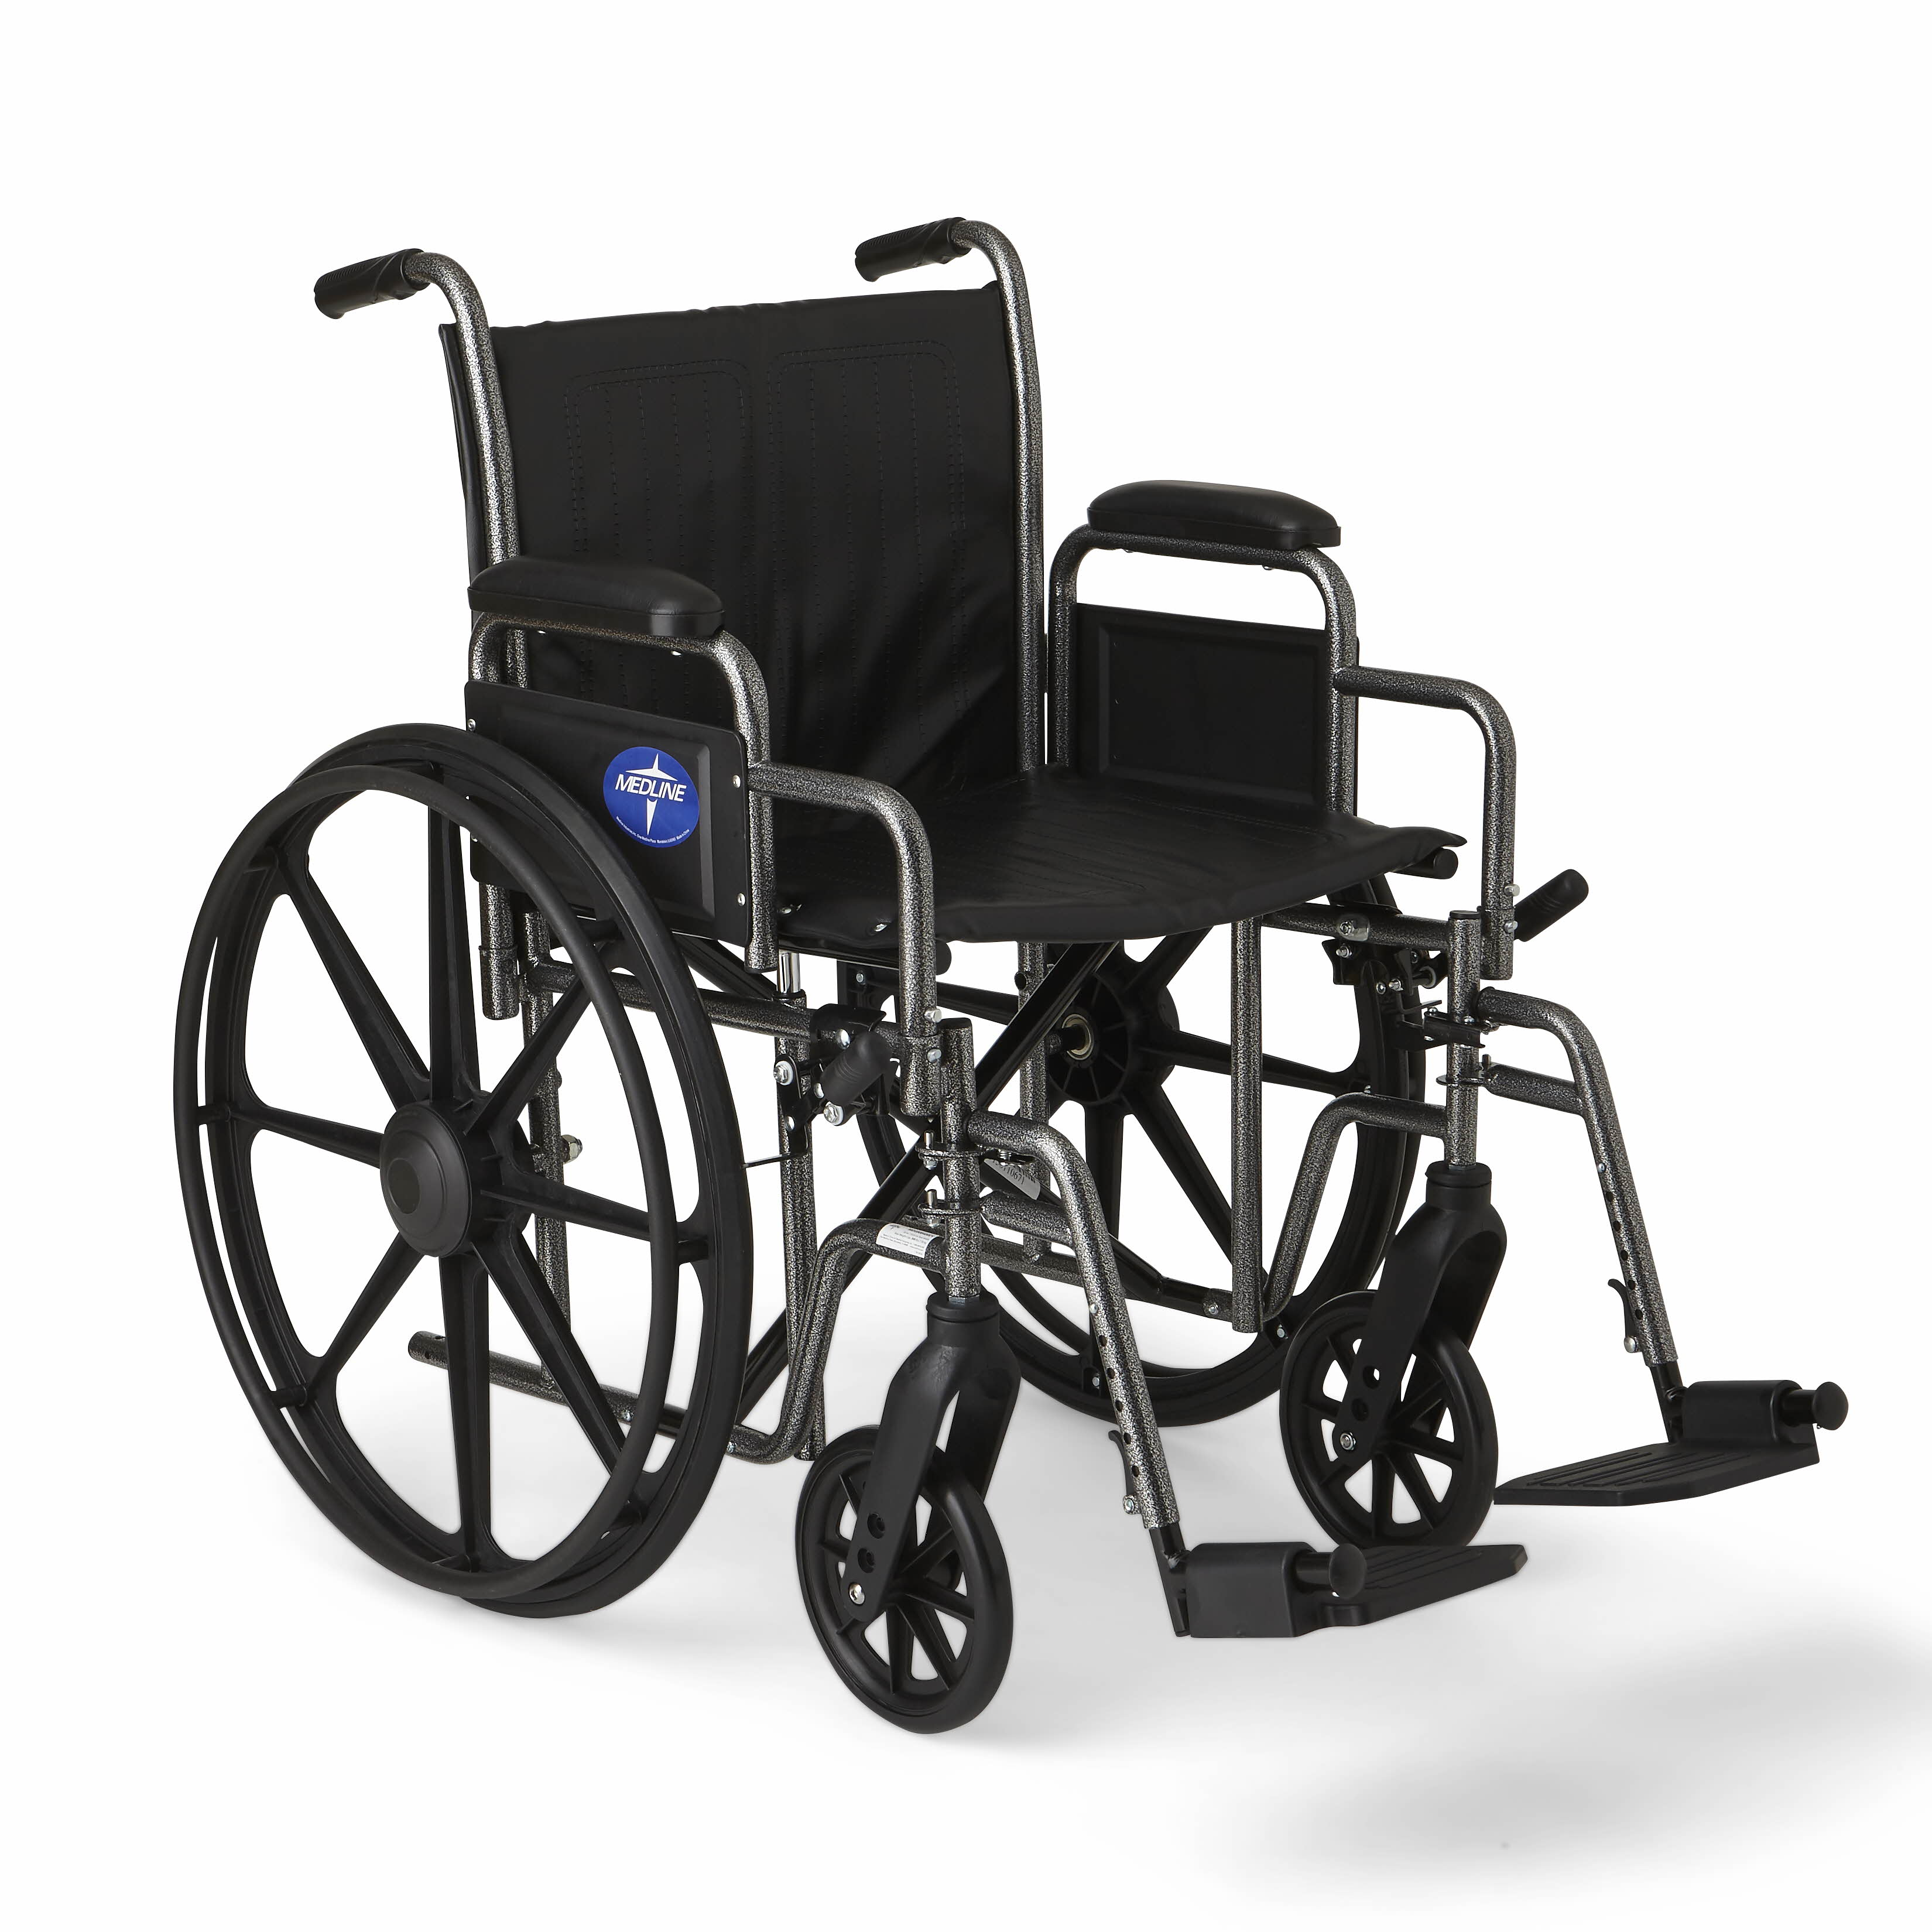 wheelchair ebay how to make chair pockets for the classroom medline k2 basic with 20 quotx16 quot seat swing away